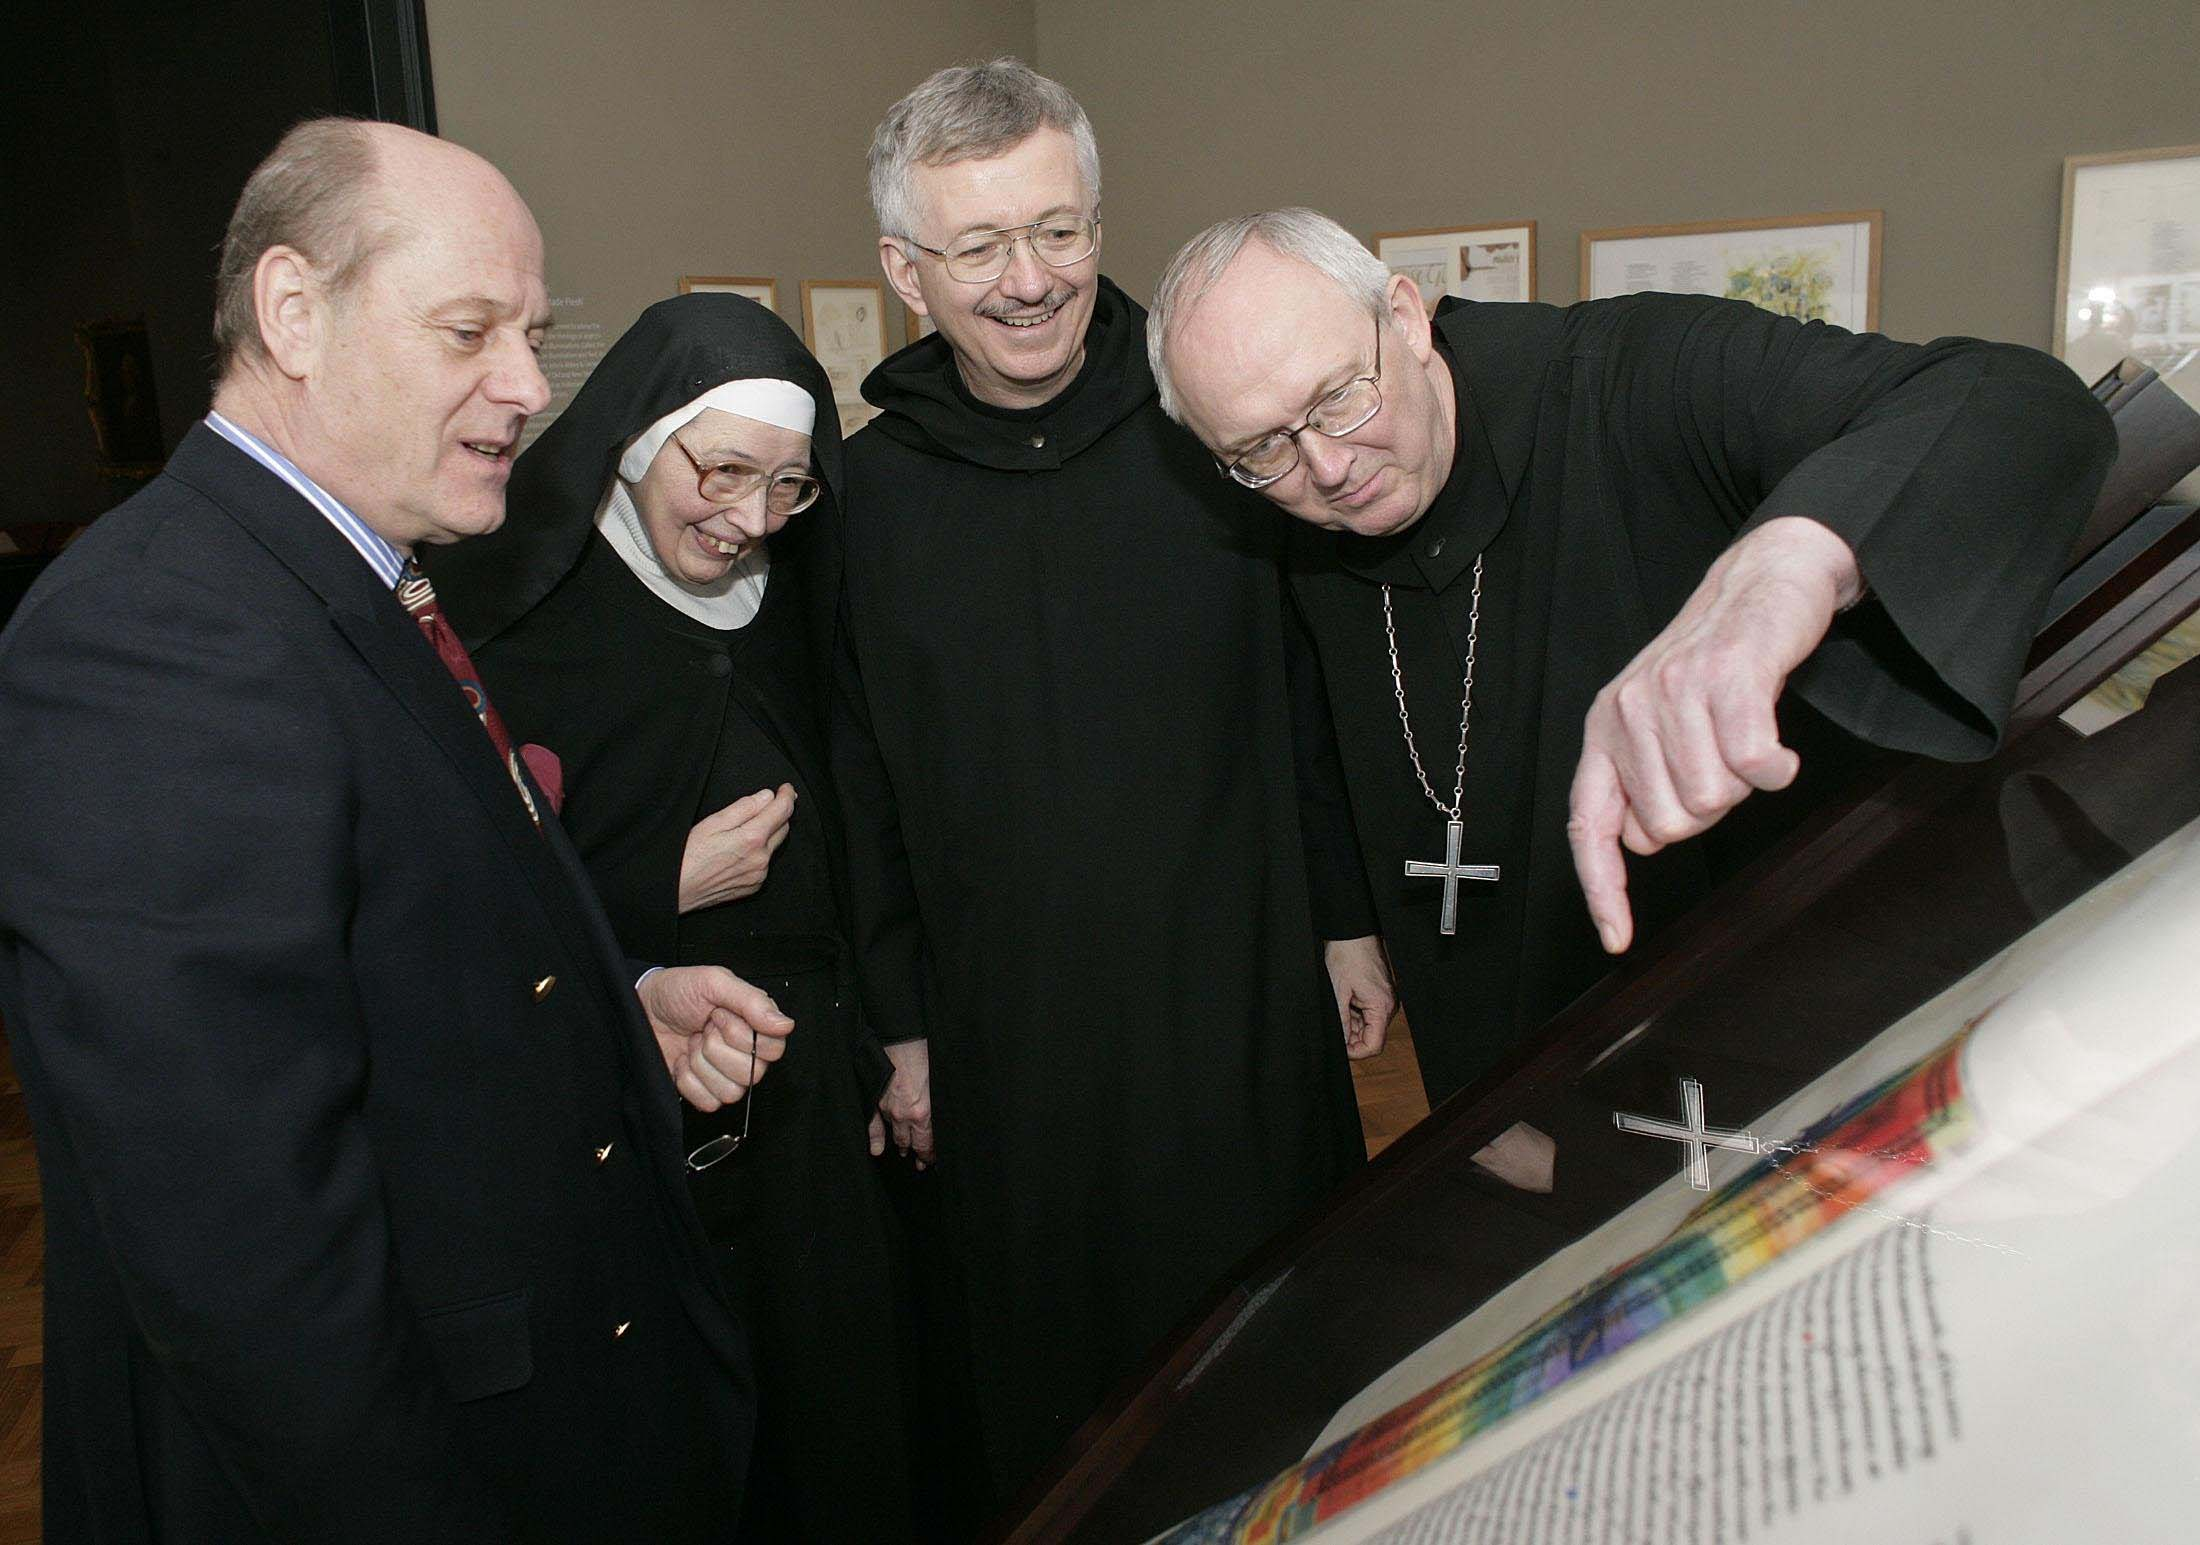 [At the V & A:(L to R) Donald Jackson, Sister Wendy, Brother Dietrich, Abbot John]